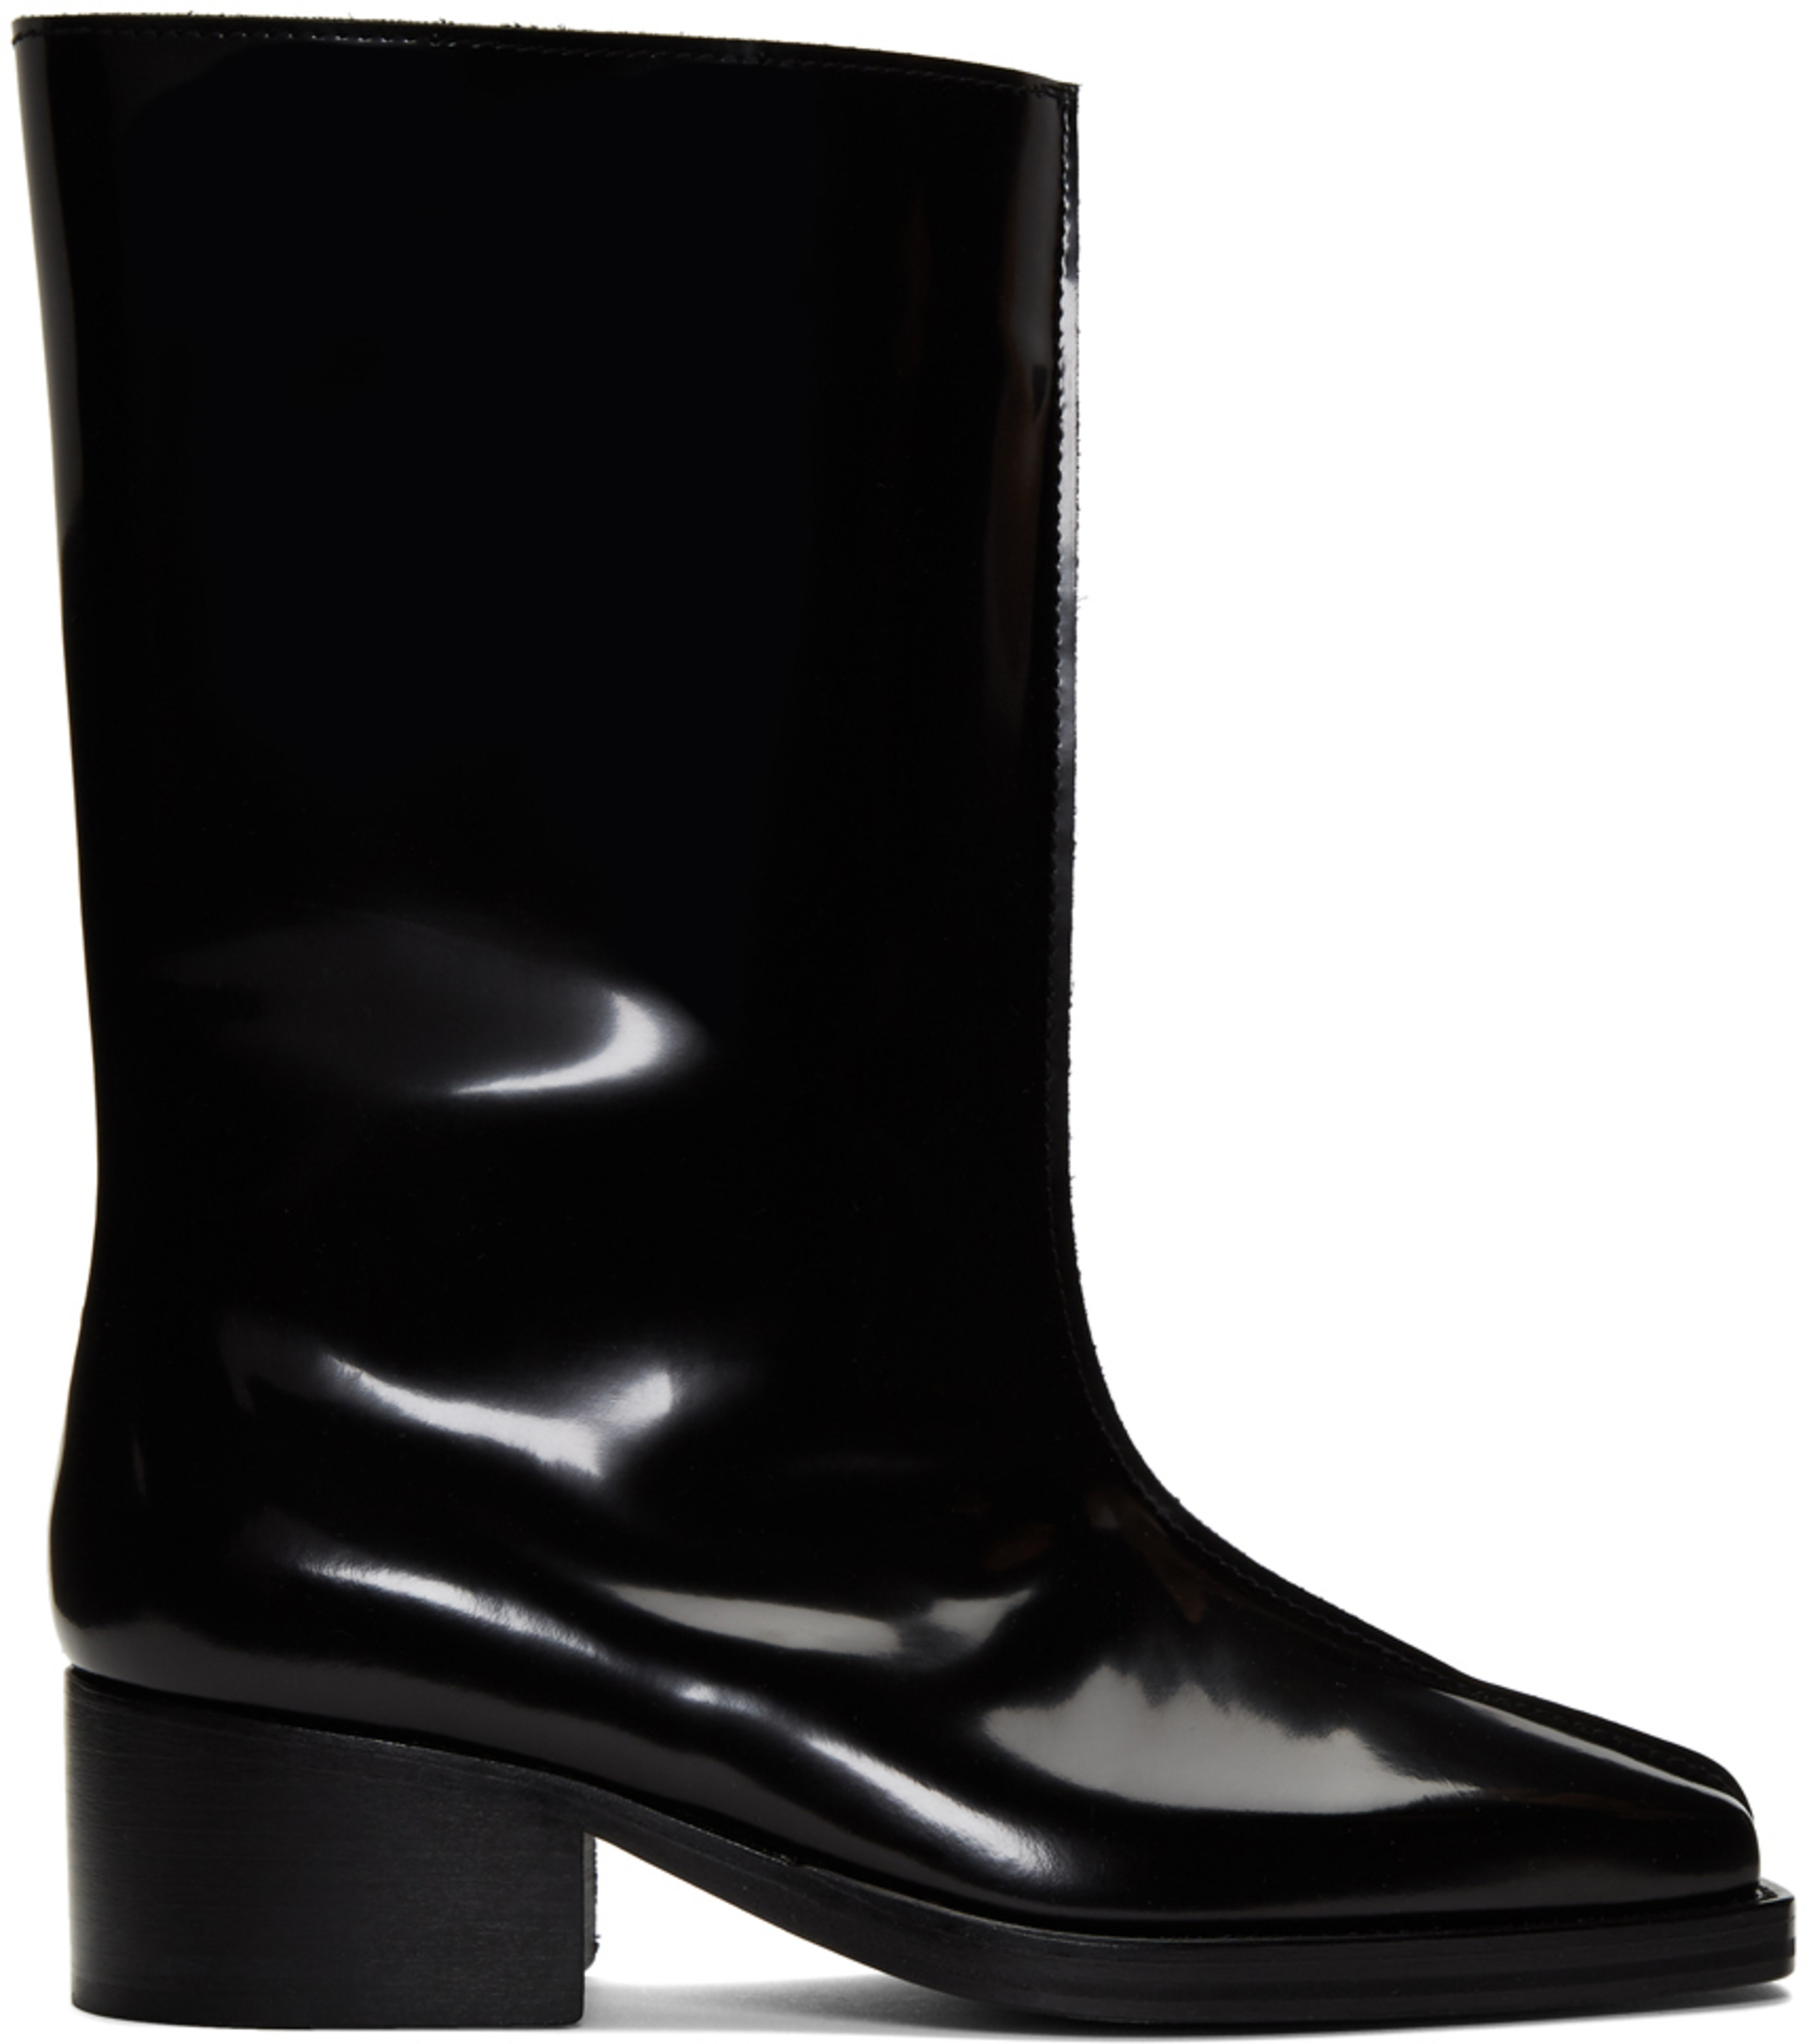 868bf986ce3 Black Patent Low Tubular Boots